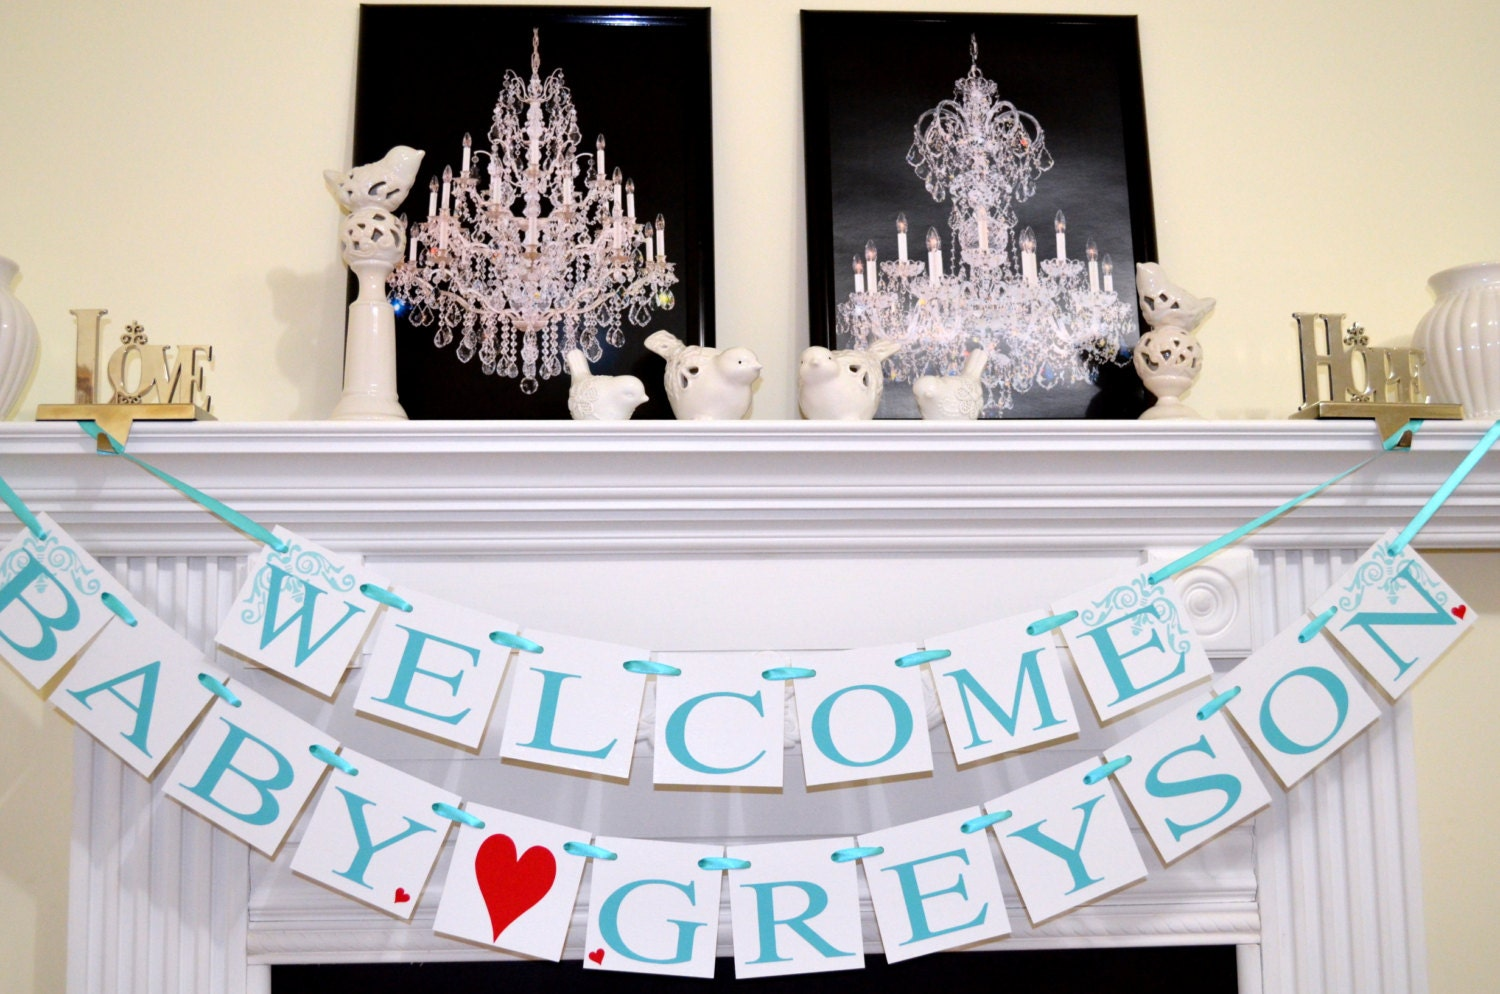 Magnificent Welcome Home Ideas Picture Collection - Home Decorating ...